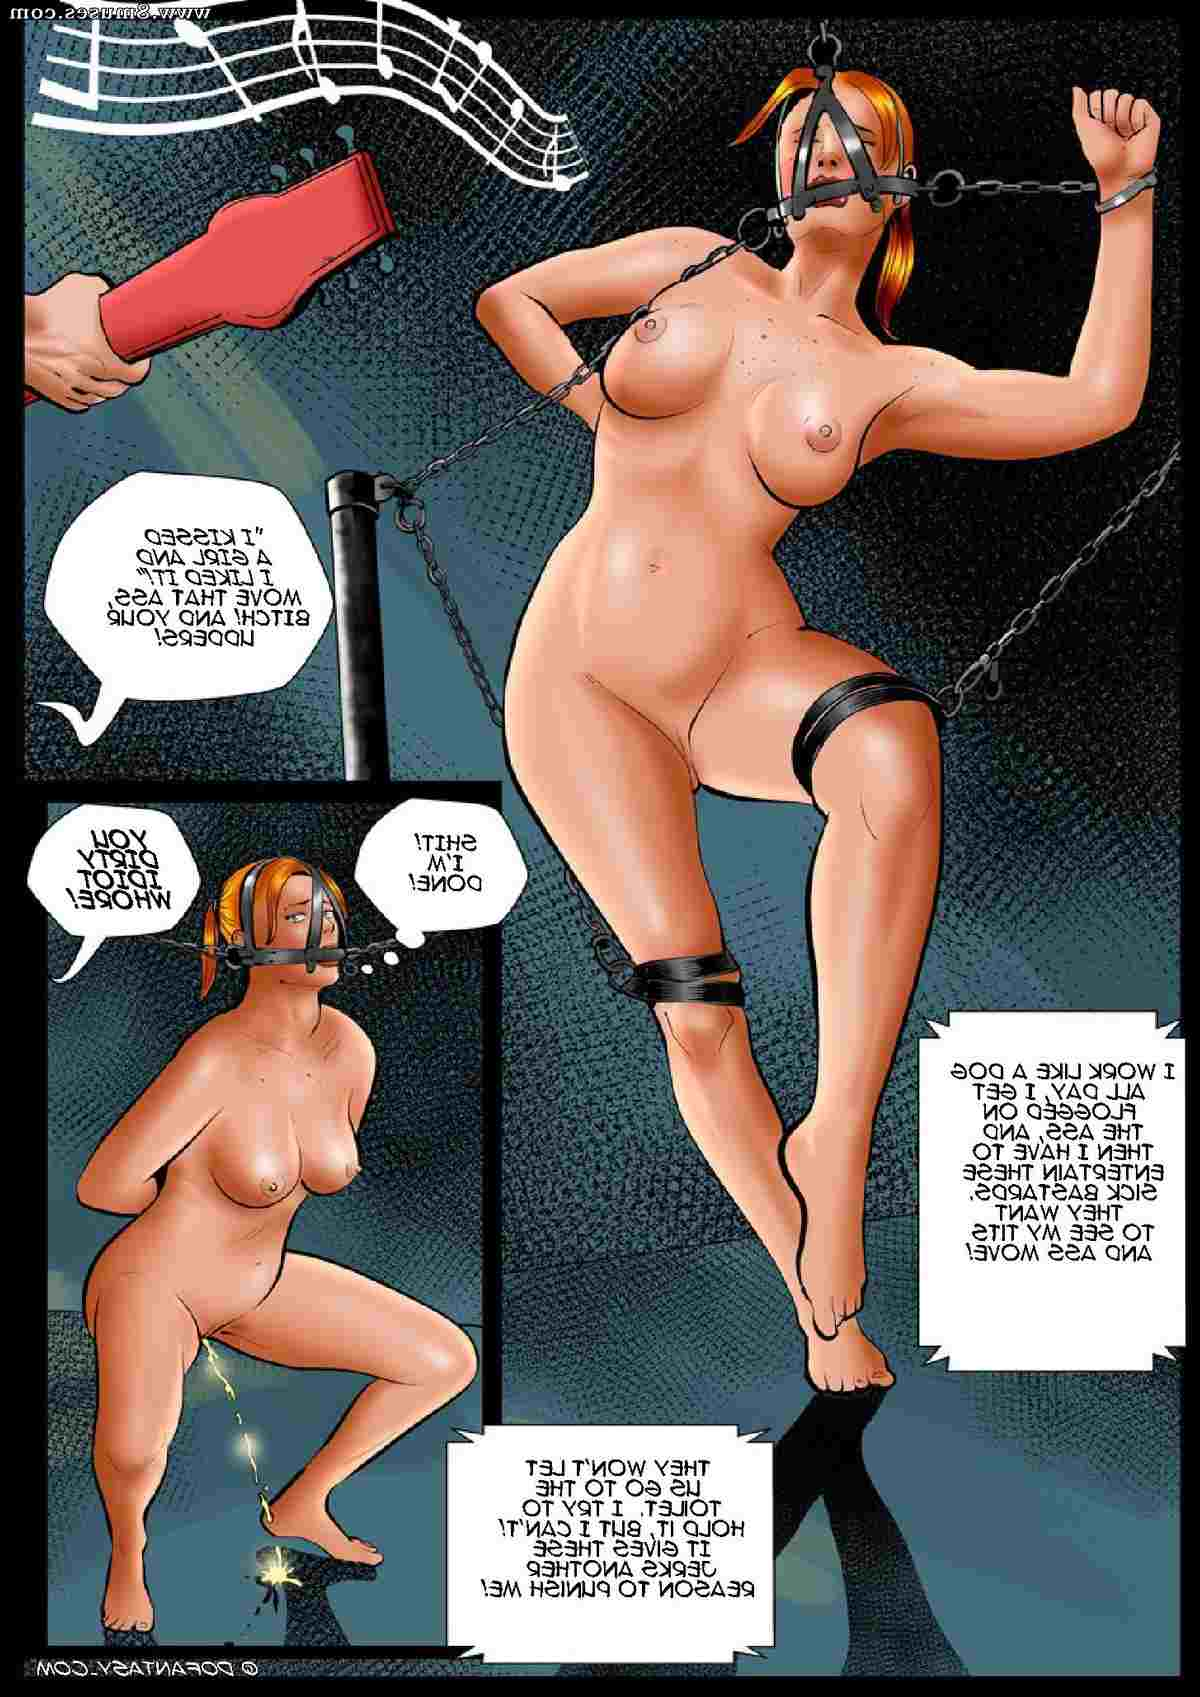 Fansadox-Comics/401-500/Fansadox-413-A-Bold-Officer-Cagri Fansadox_413_-_A_Bold_Officer_-_Cagri__8muses_-_Sex_and_Porn_Comics_39.jpg